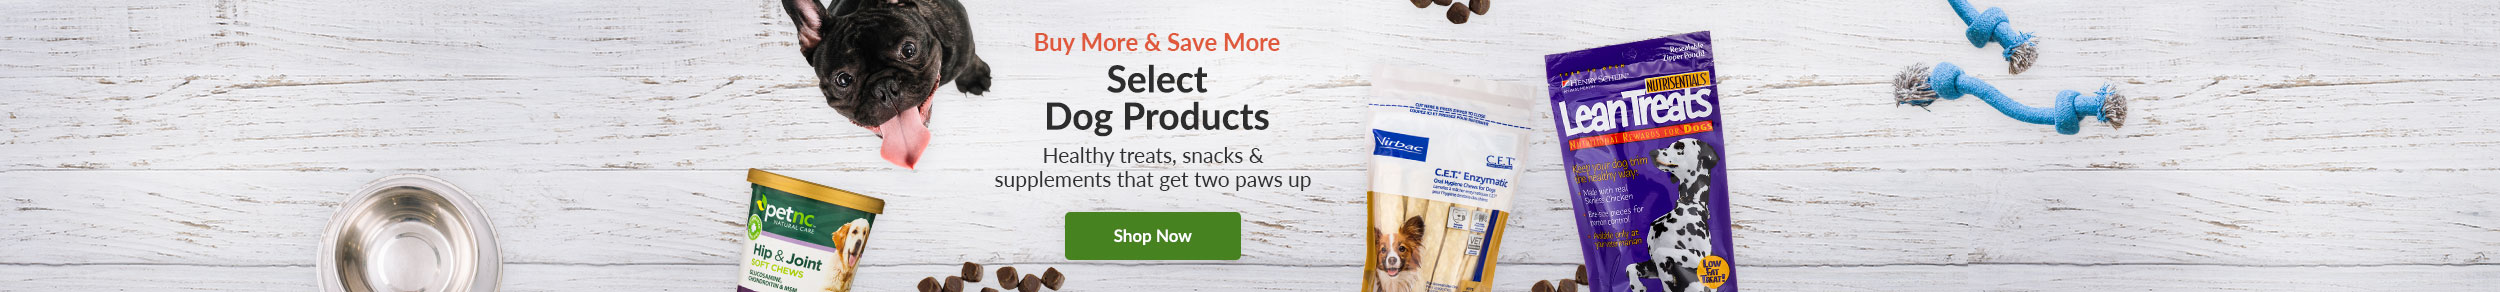 https://i3.pureformulas.net/images/static/Buy-More-Save-More-Select-Dog-Products_122018.jpg